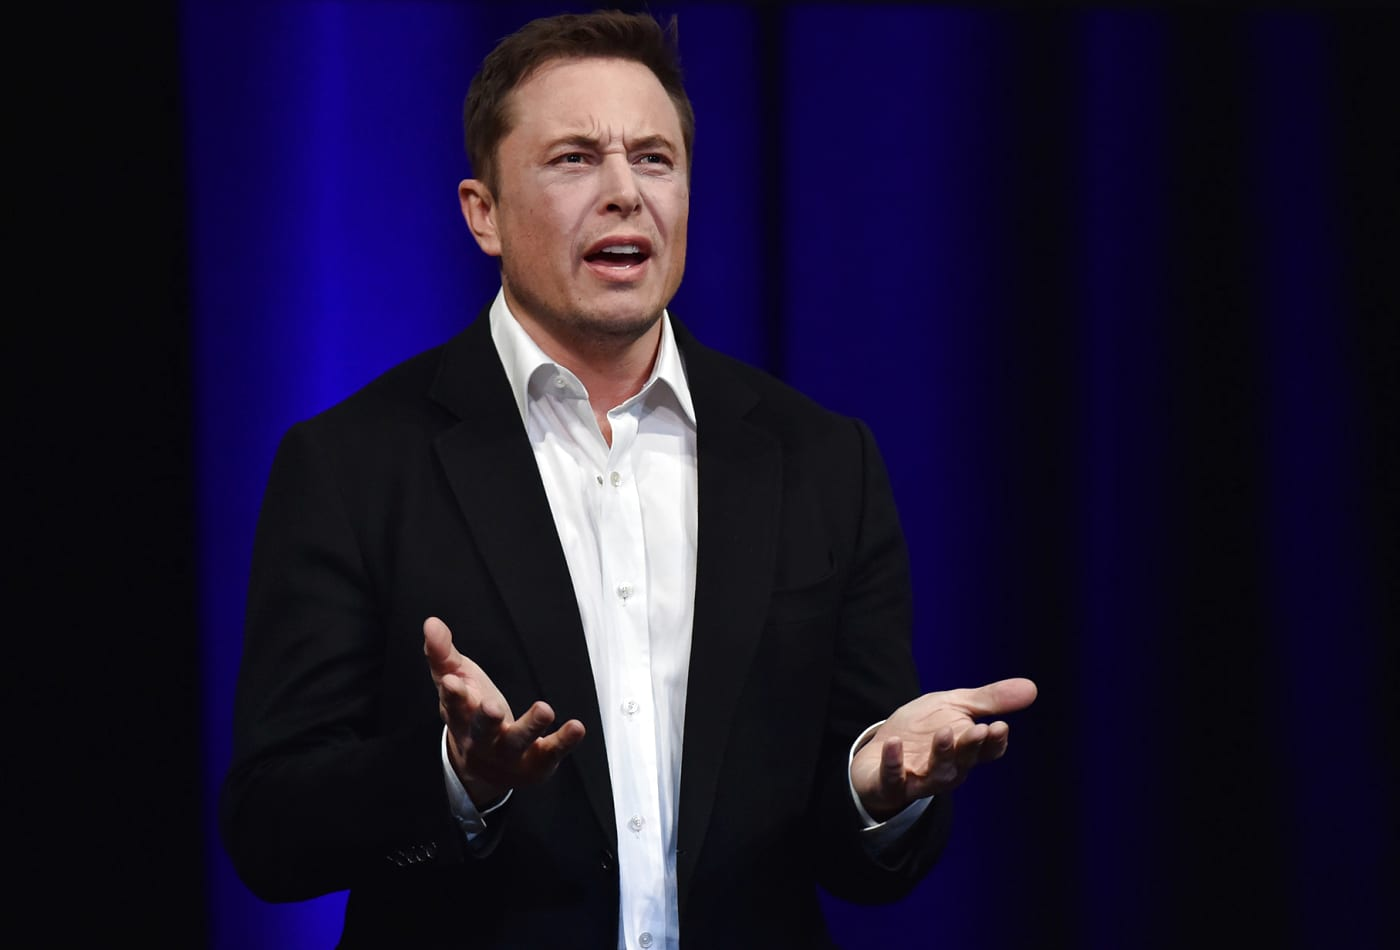 What does elon musk think about cryptocurrency